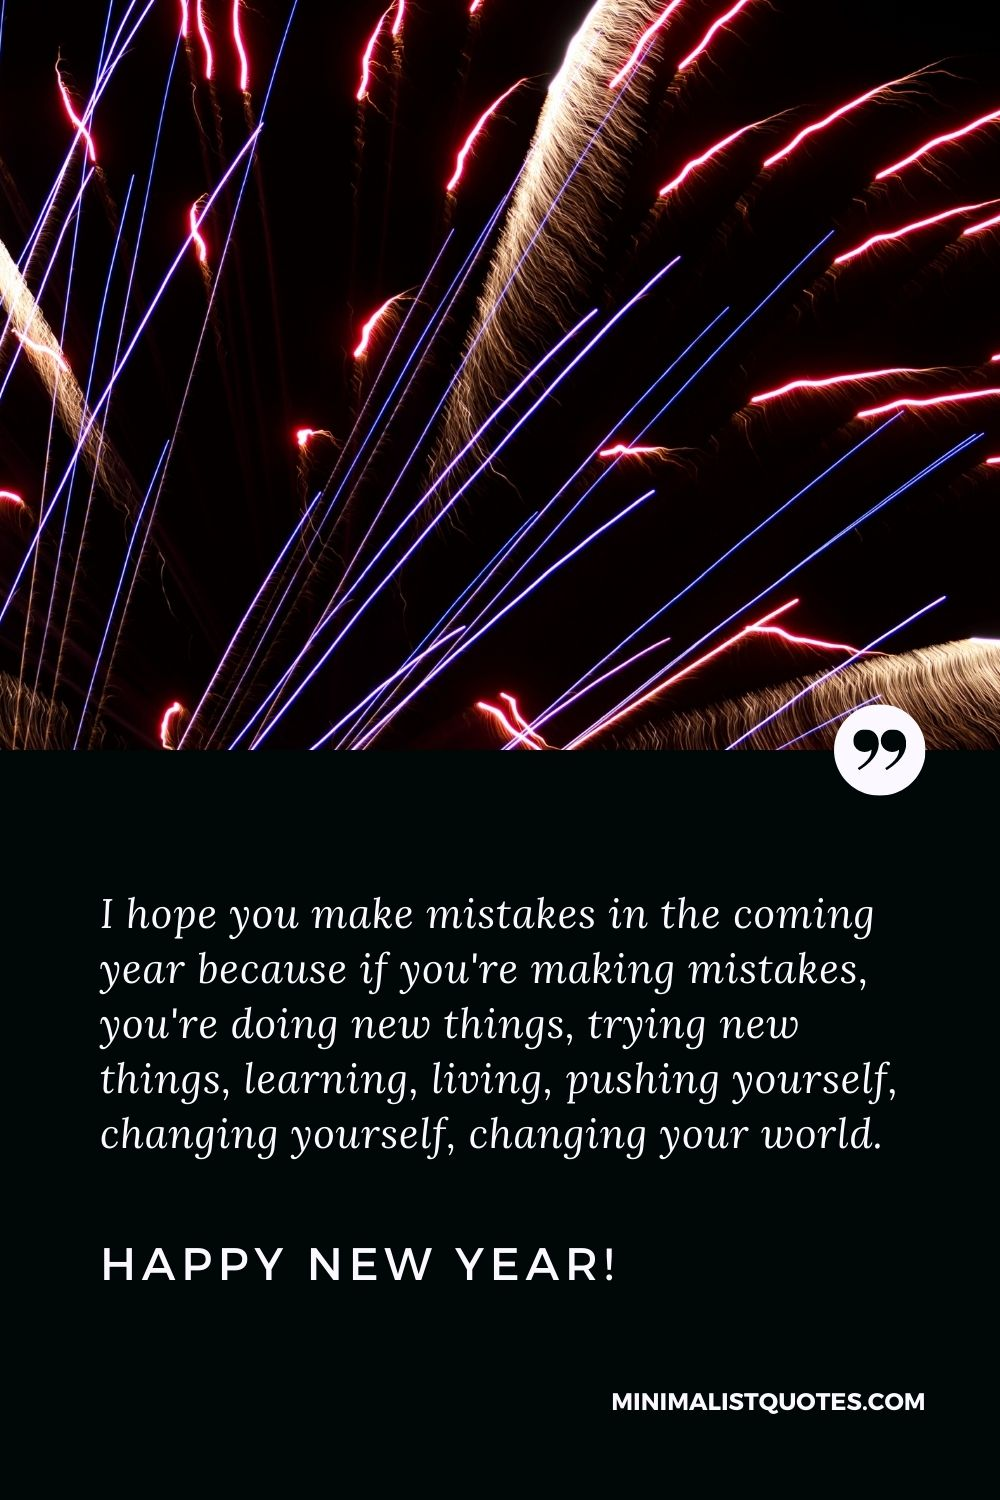 New year wishes for friends: I hope you make mistakes in the coming year because if you're making mistakes, you're doing new things, trying new things, learning, living, pushing yourself, changing yourself, changing your world. Happy New Year!